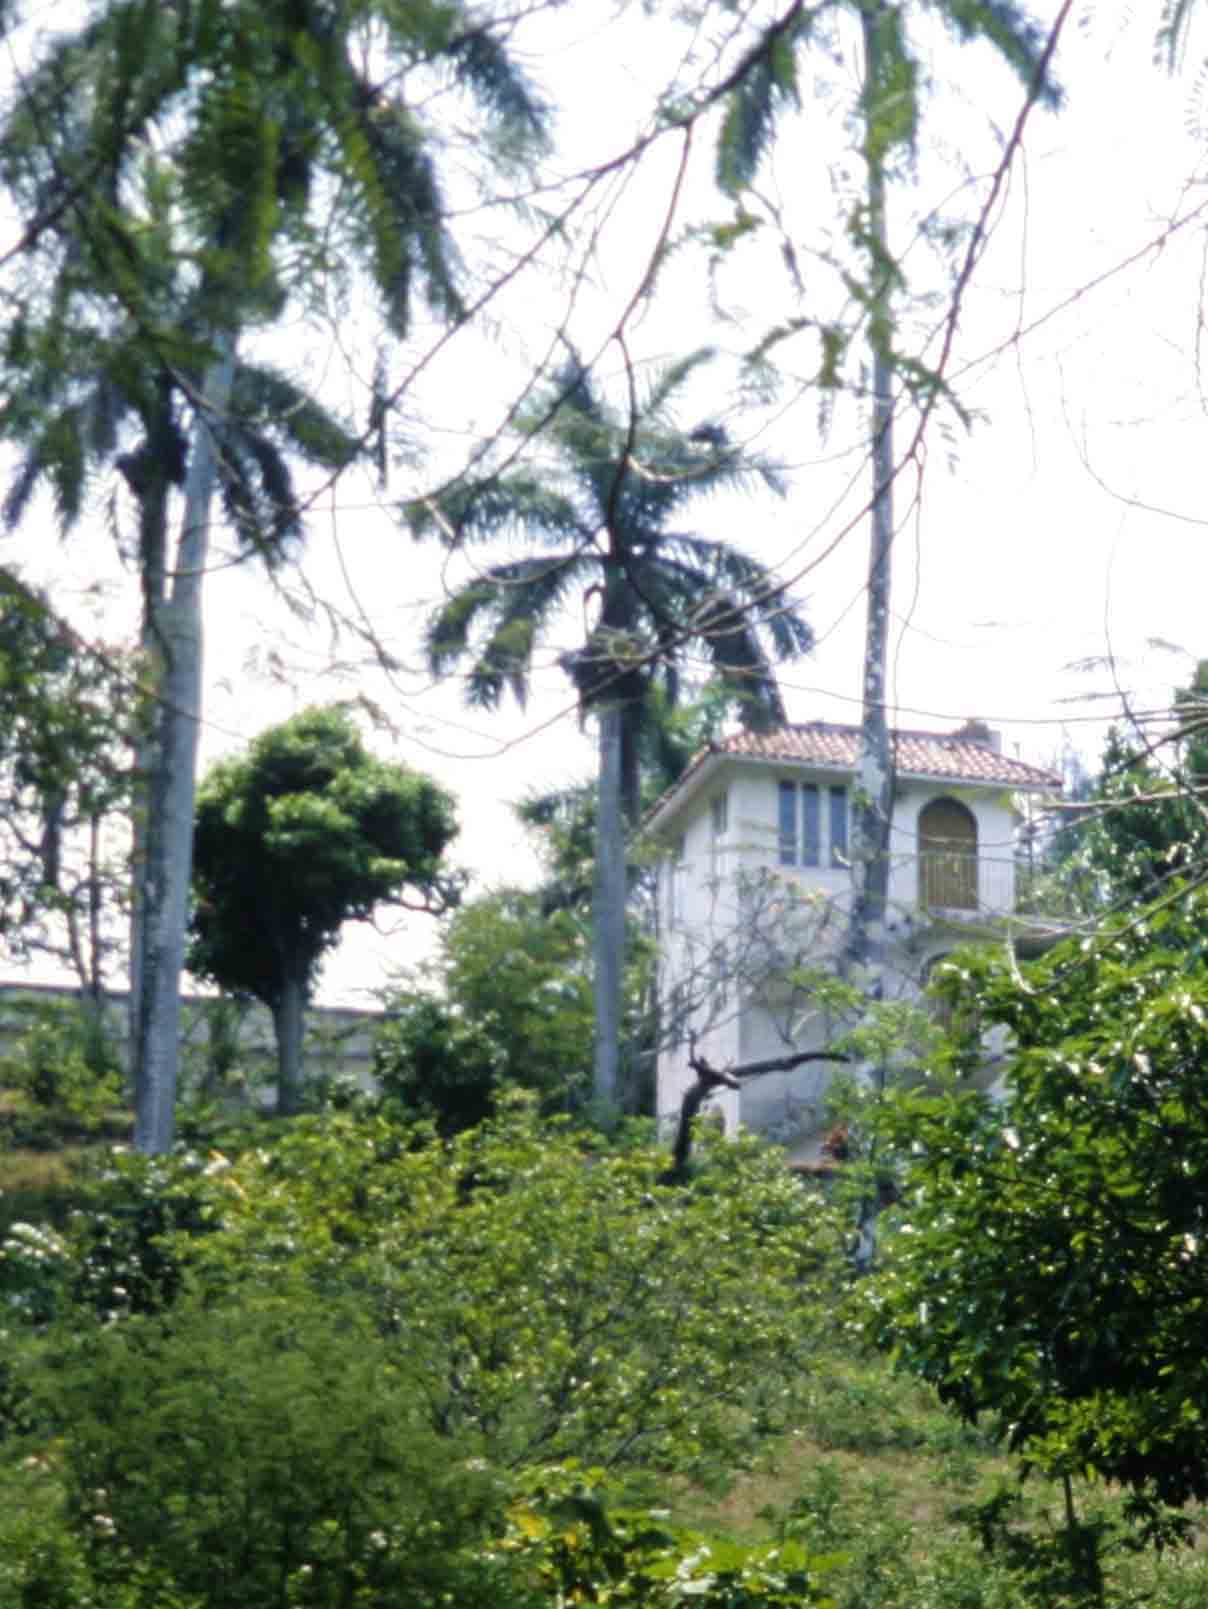 Finca Vigía; Kuba, April 1983 Photo by W. Stock